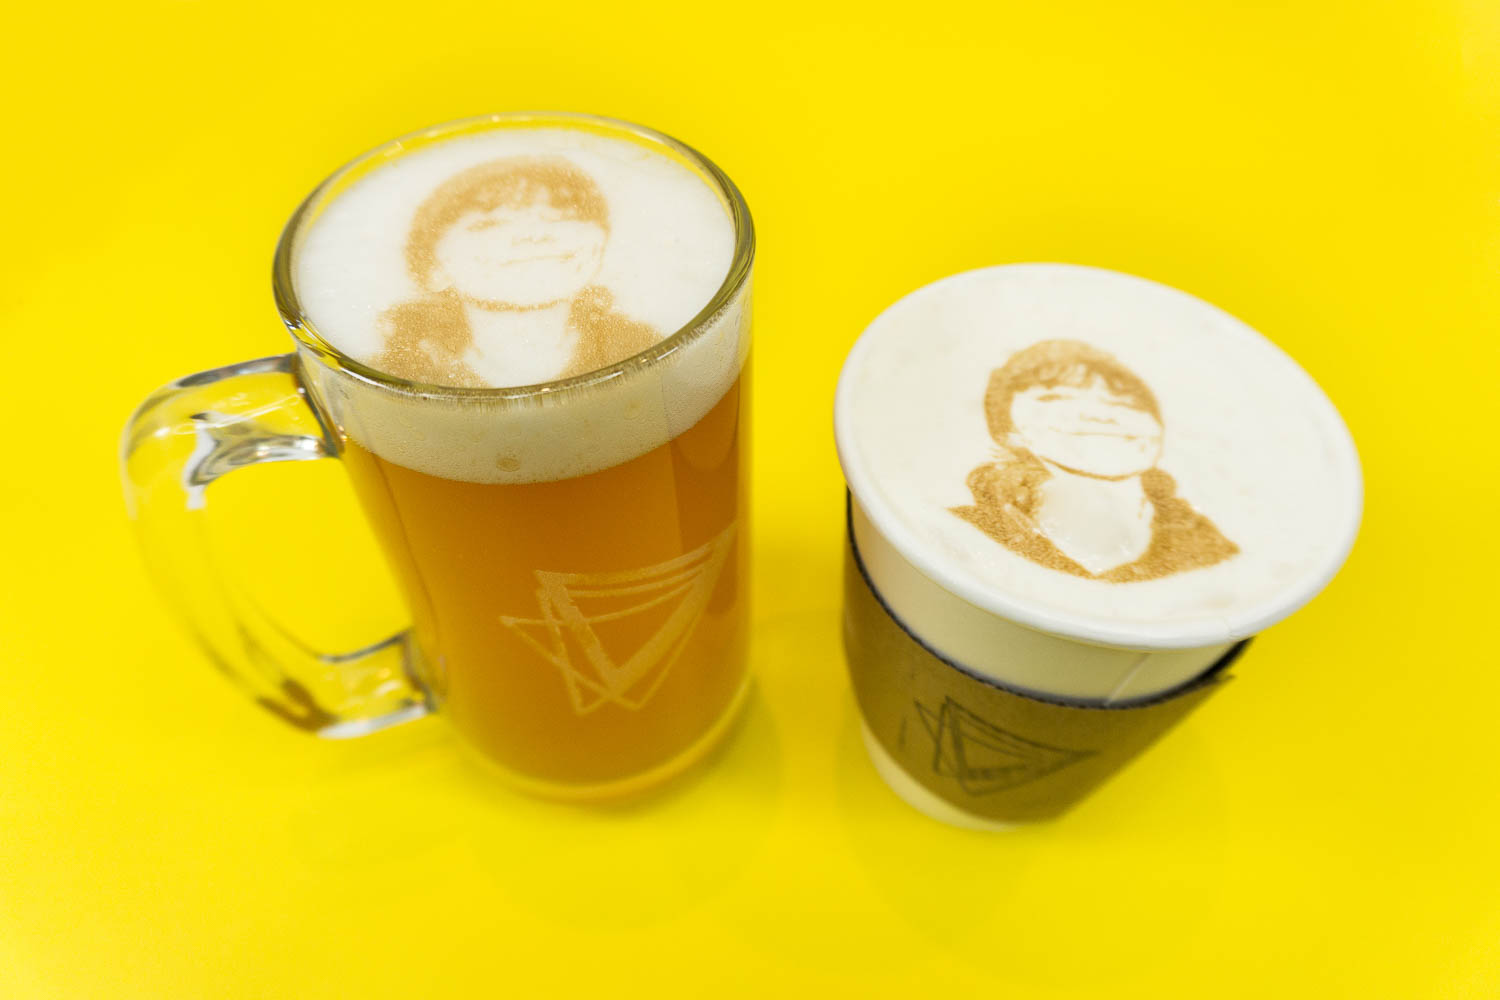 What:  Selfie beer & coffee |  Tool:  Beve-Bot